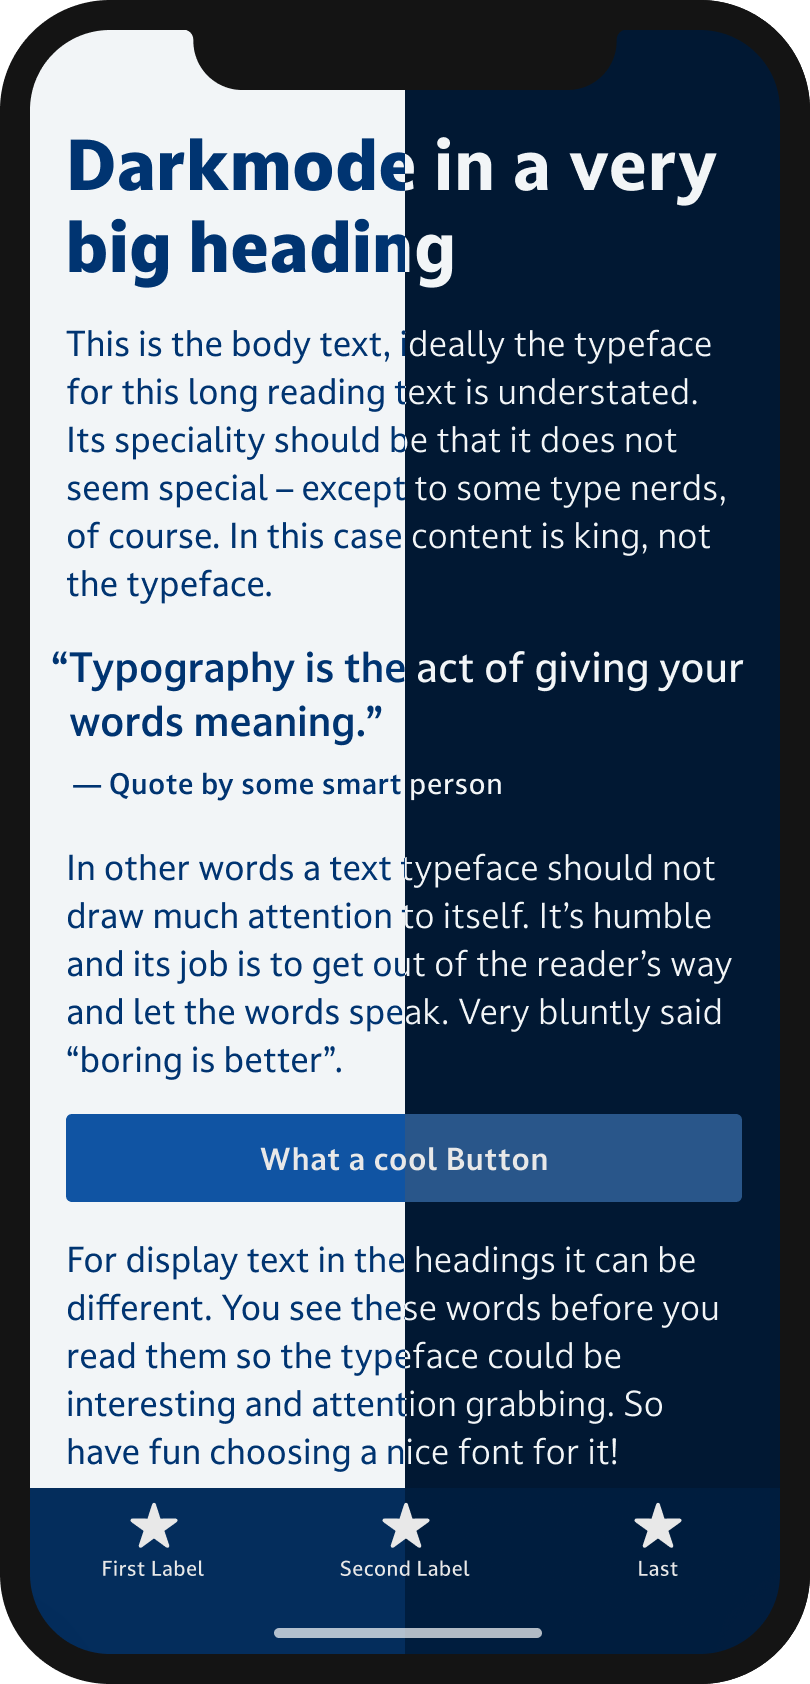 The typeface Darkmode on a mobile phone in a headline, body text, a pull quote and the labels of a button and navigation. Half of the phone is set dark text on light background, the other half is set in light text on dark background.